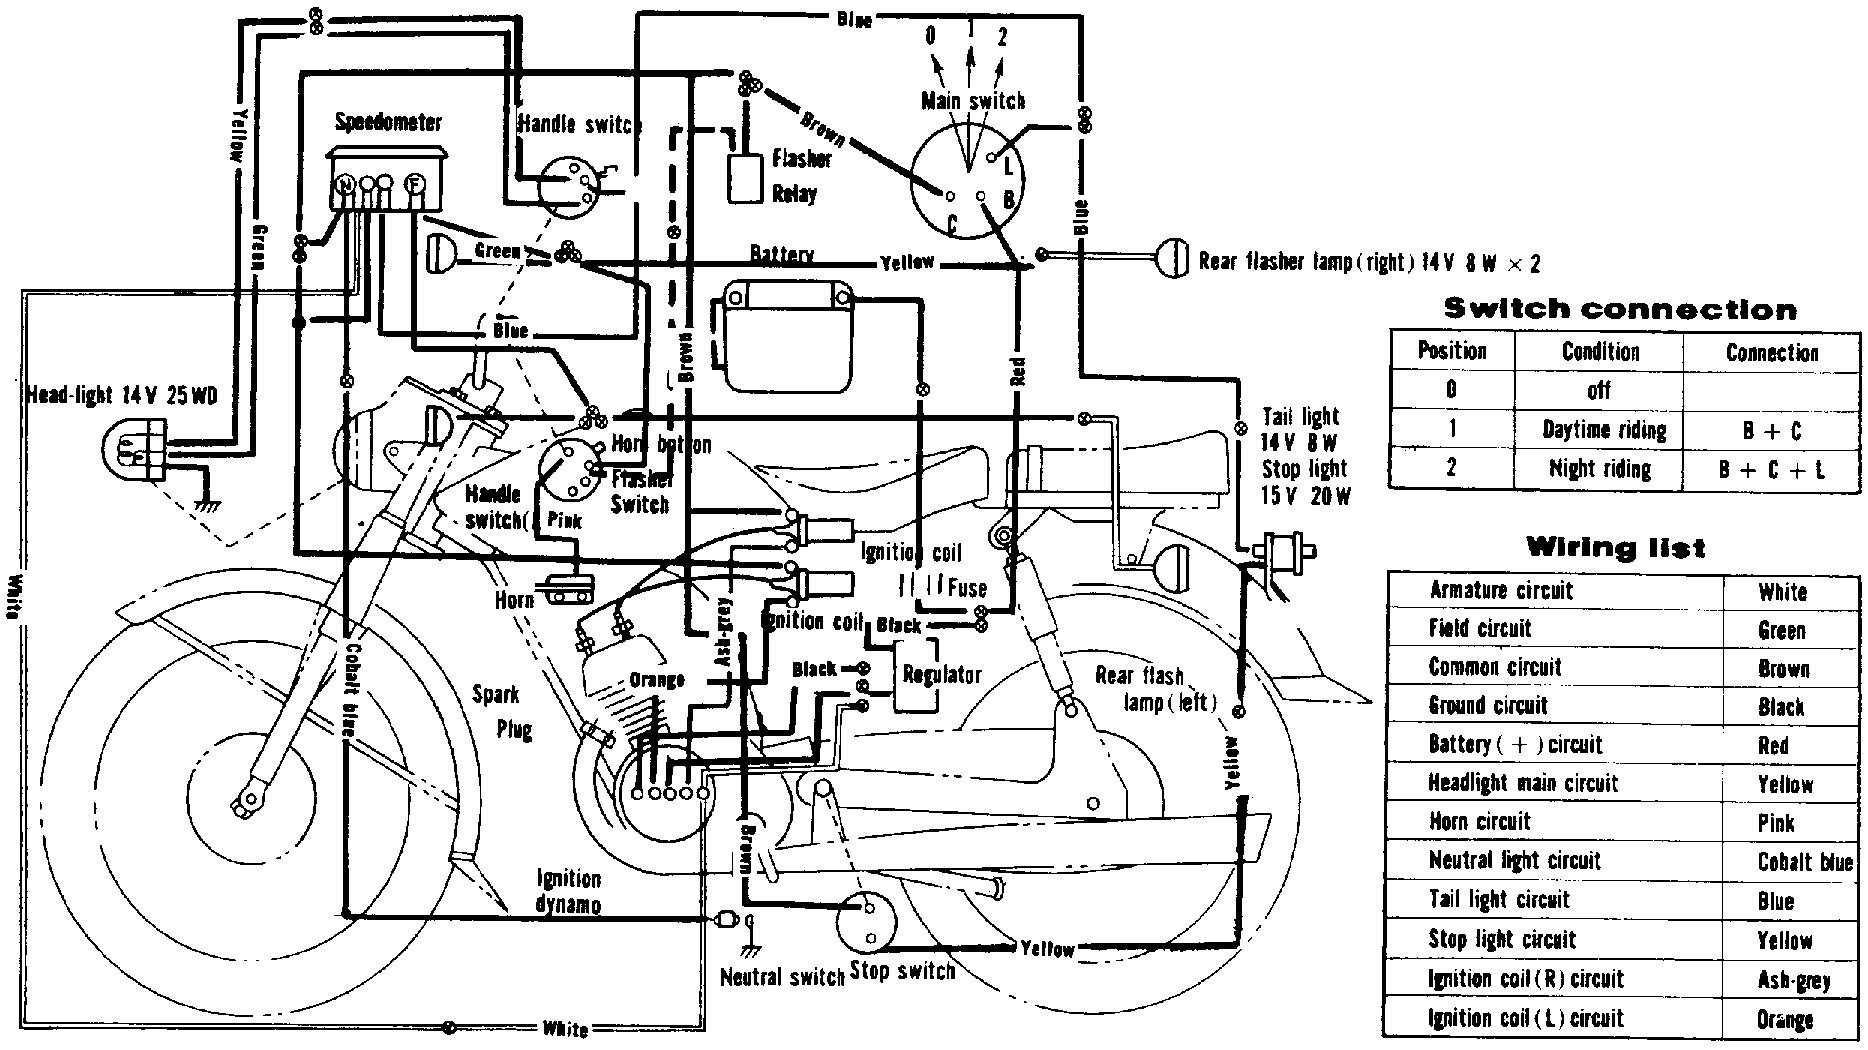 Yamaha L2gf Wiring Diagram Simple Posts Venture Motorcycle Engine Diagrams L2 Origin Raider